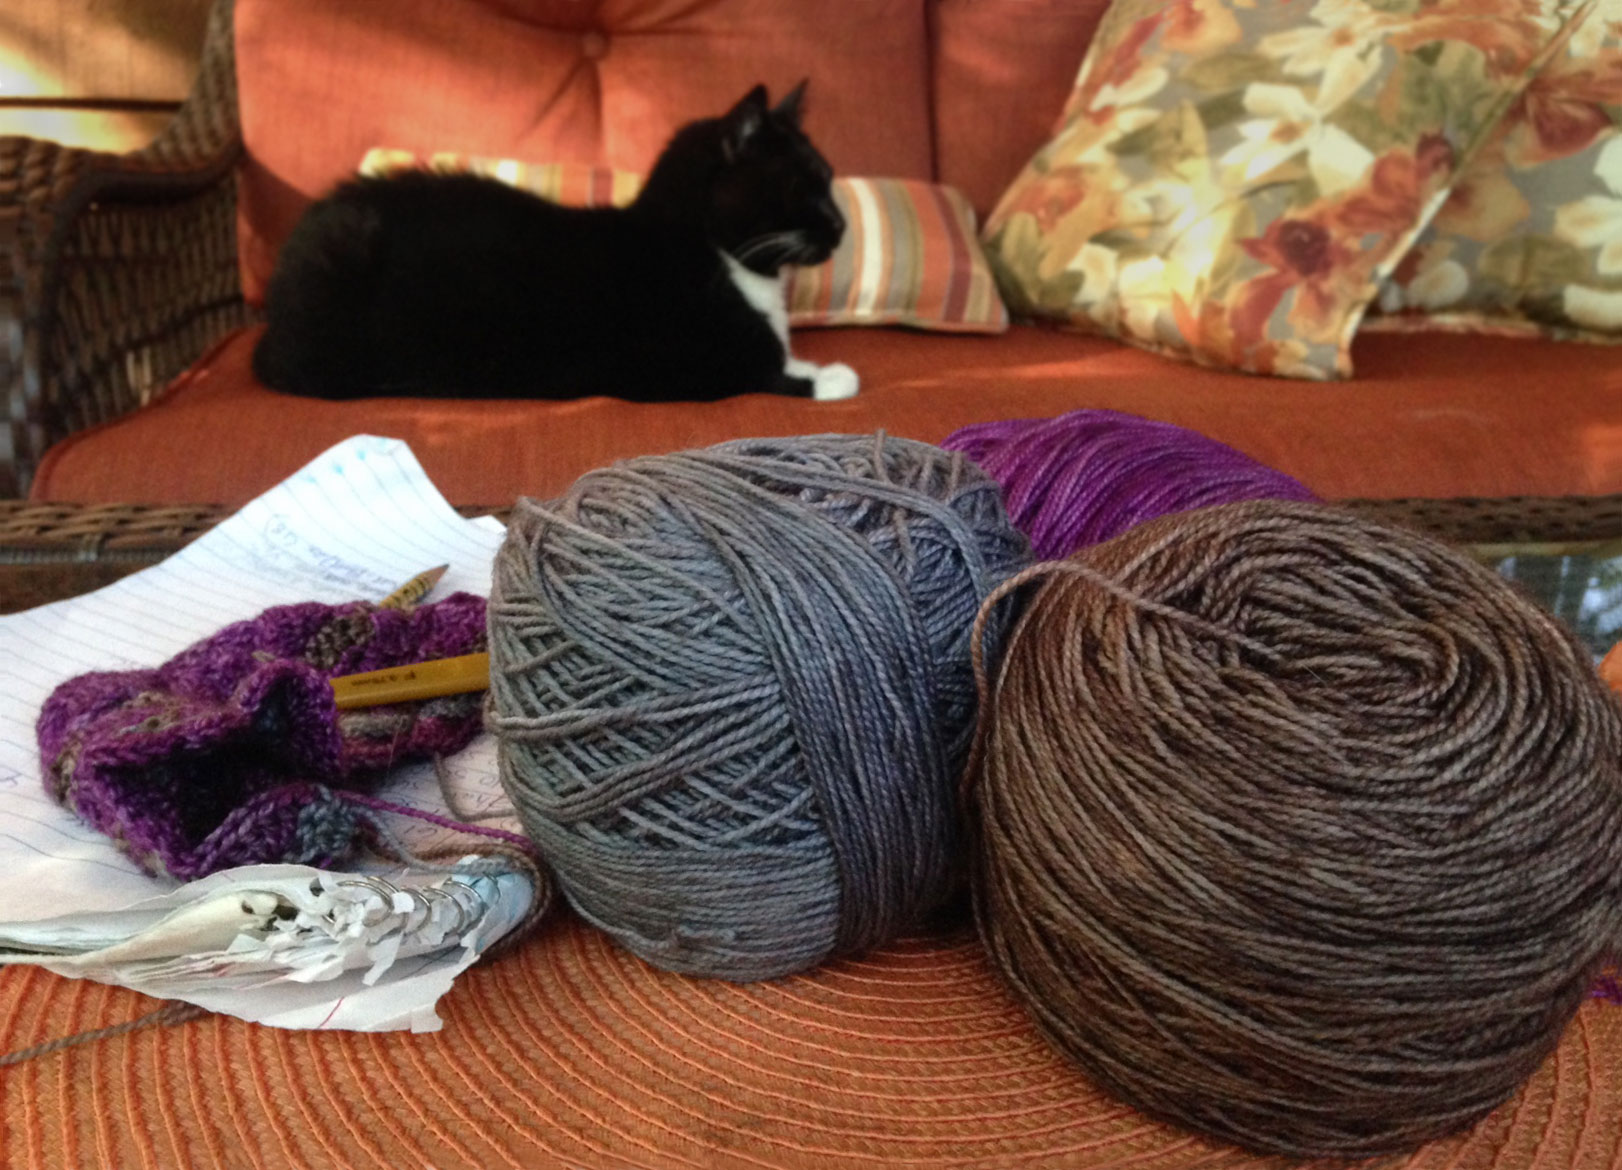 Yarn and crocheting with cat on porch to calm the mind and renew the spirit.